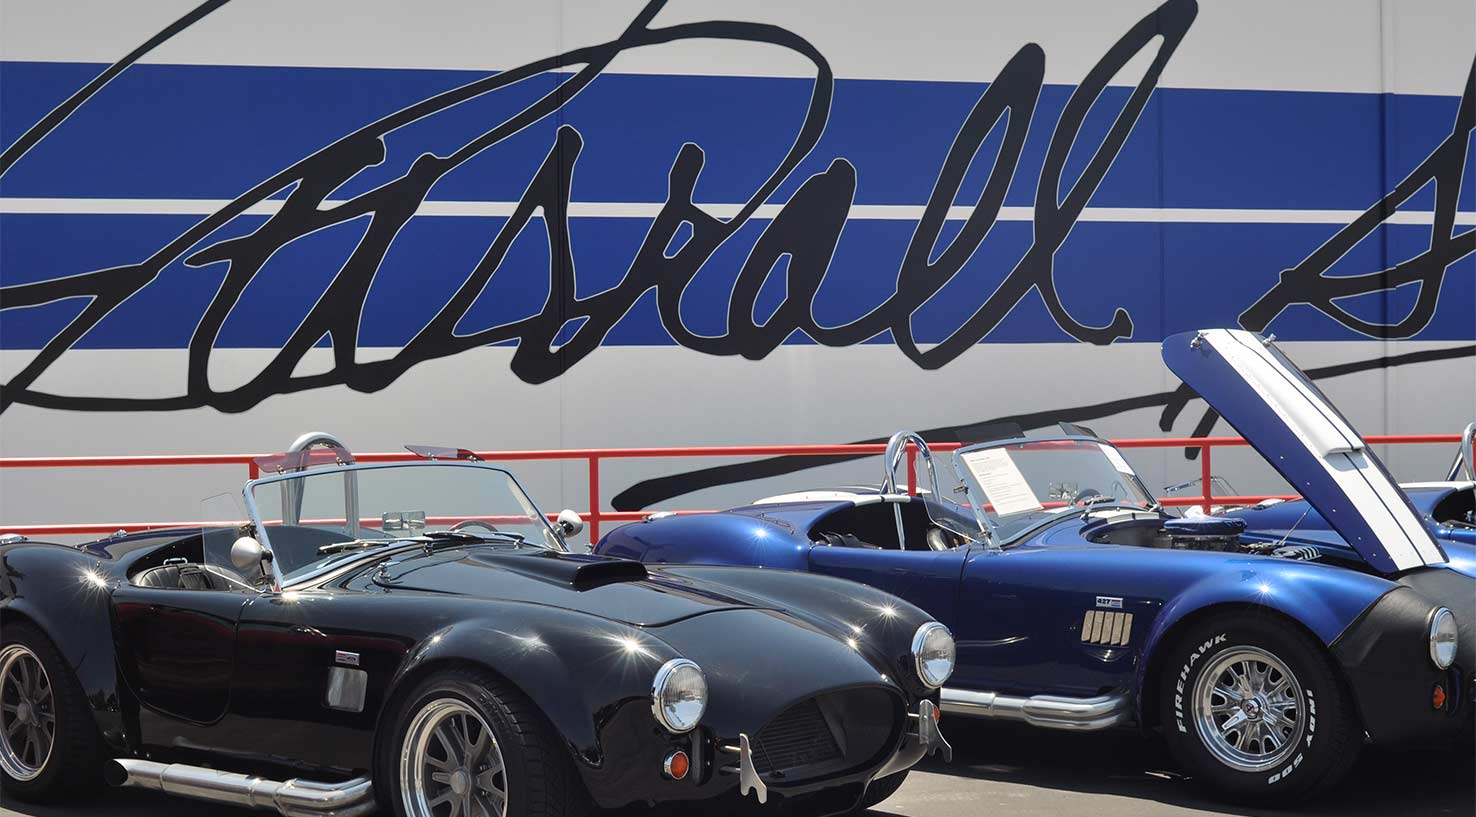 Several Shelby Cobras in front of the newly repainted car company's corporate headquarters